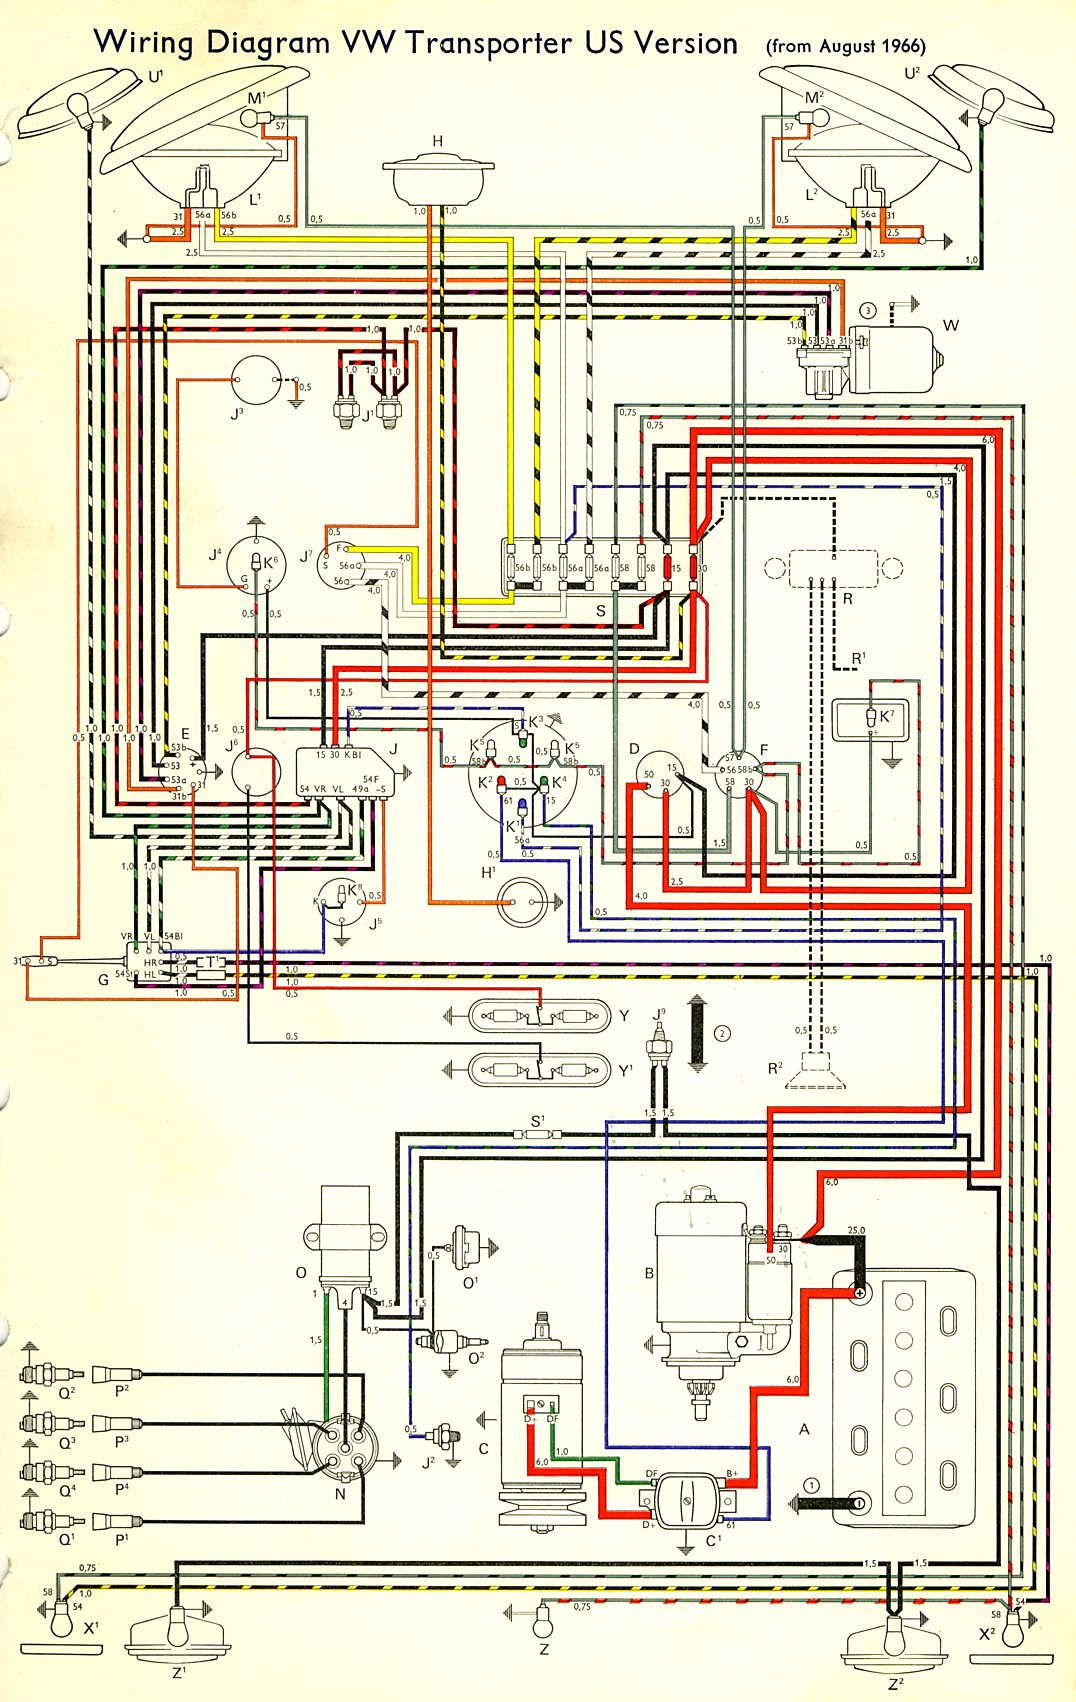 bus_67_USA 67 vw bus wiring harness 71 vw wiring harness \u2022 wiring diagrams vw type 3 wiring harness at cos-gaming.co